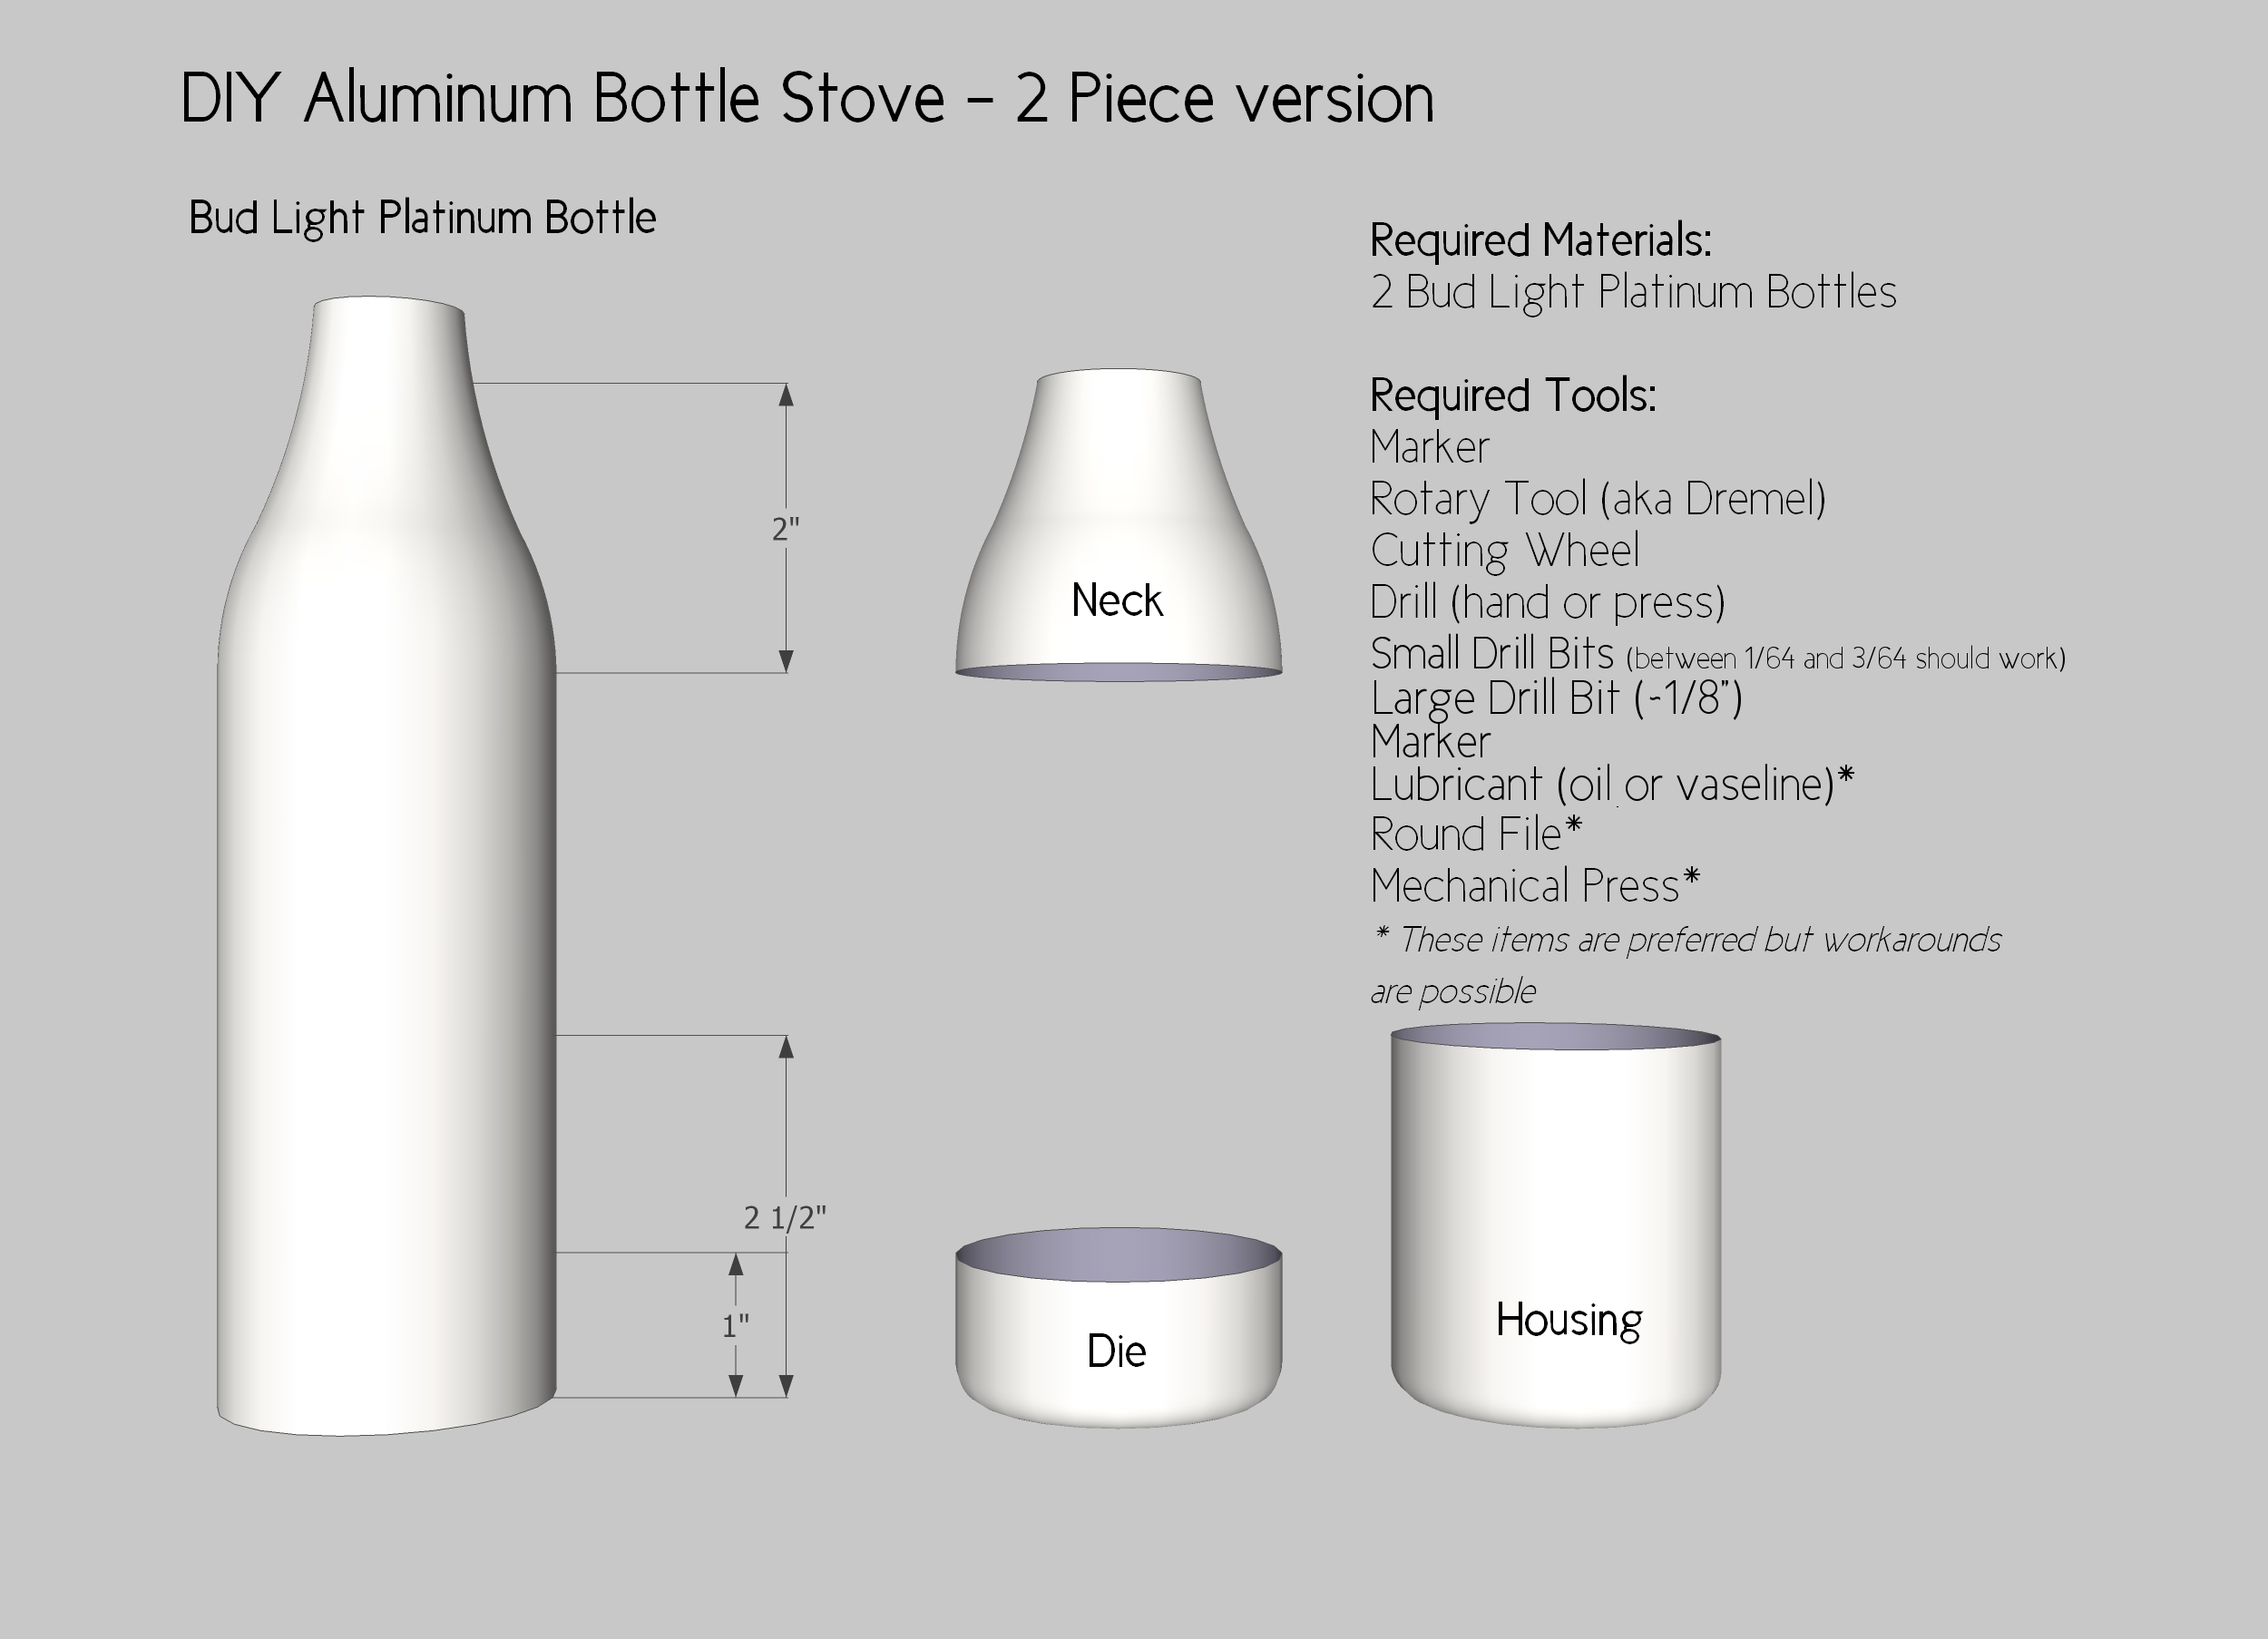 Aluminum Beer Bottle Stove - 2 Piece